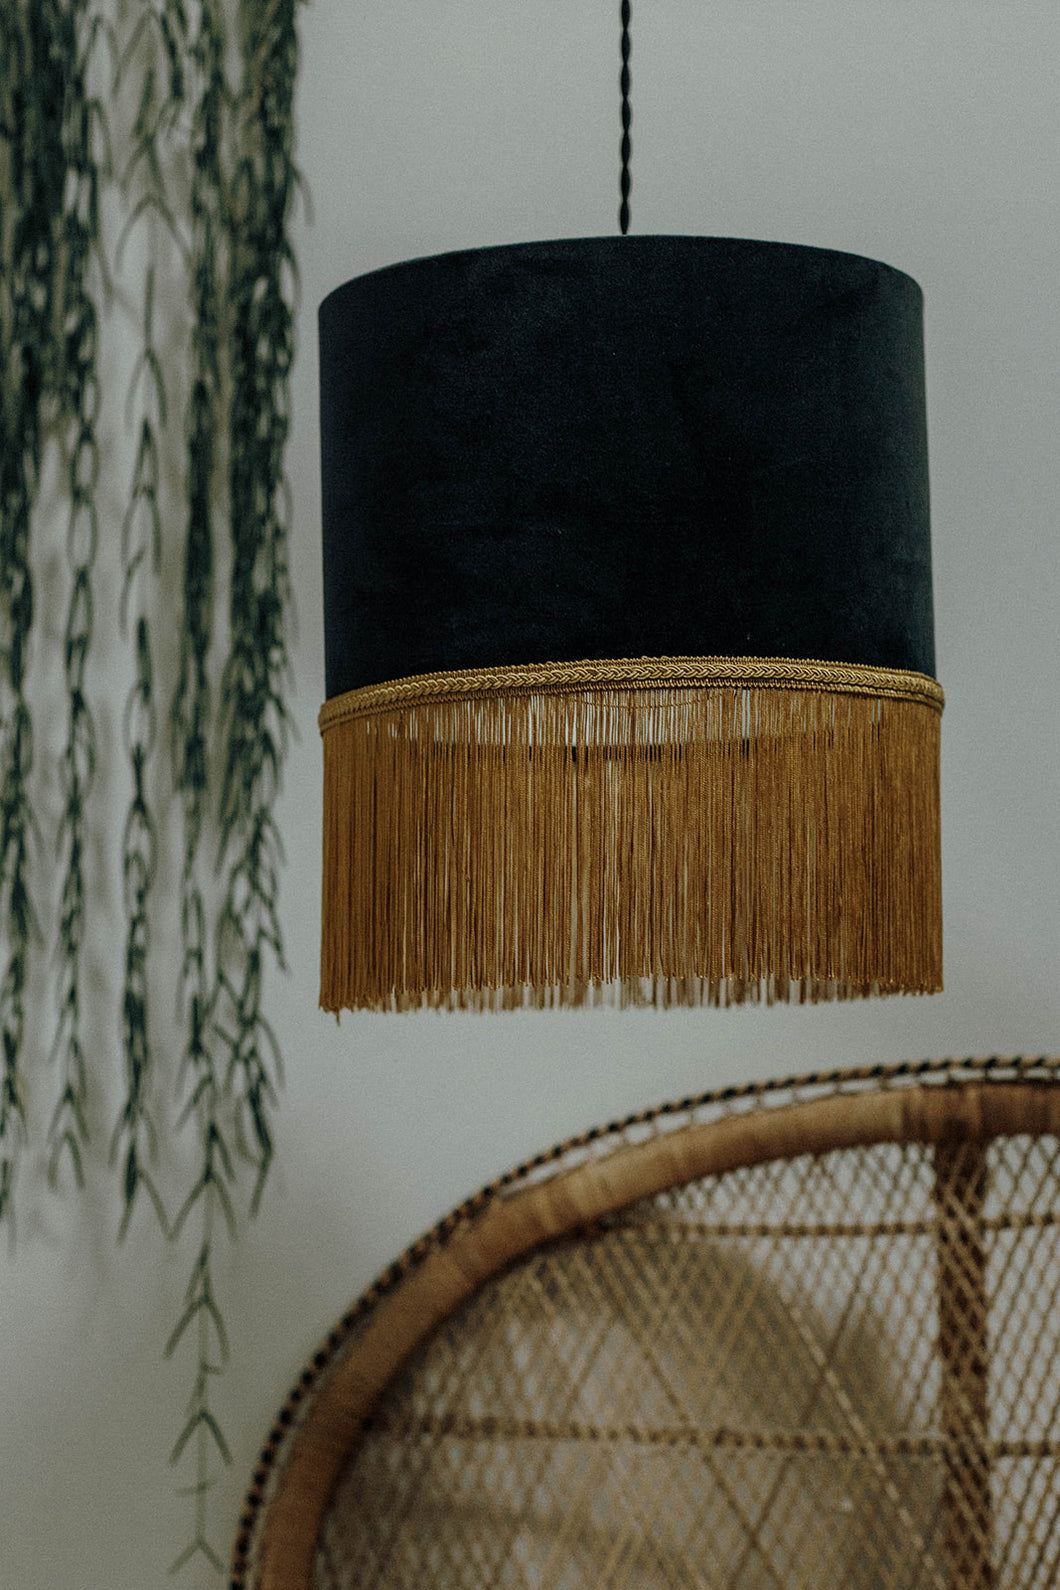 Grey velvet lampshade with gold fringe